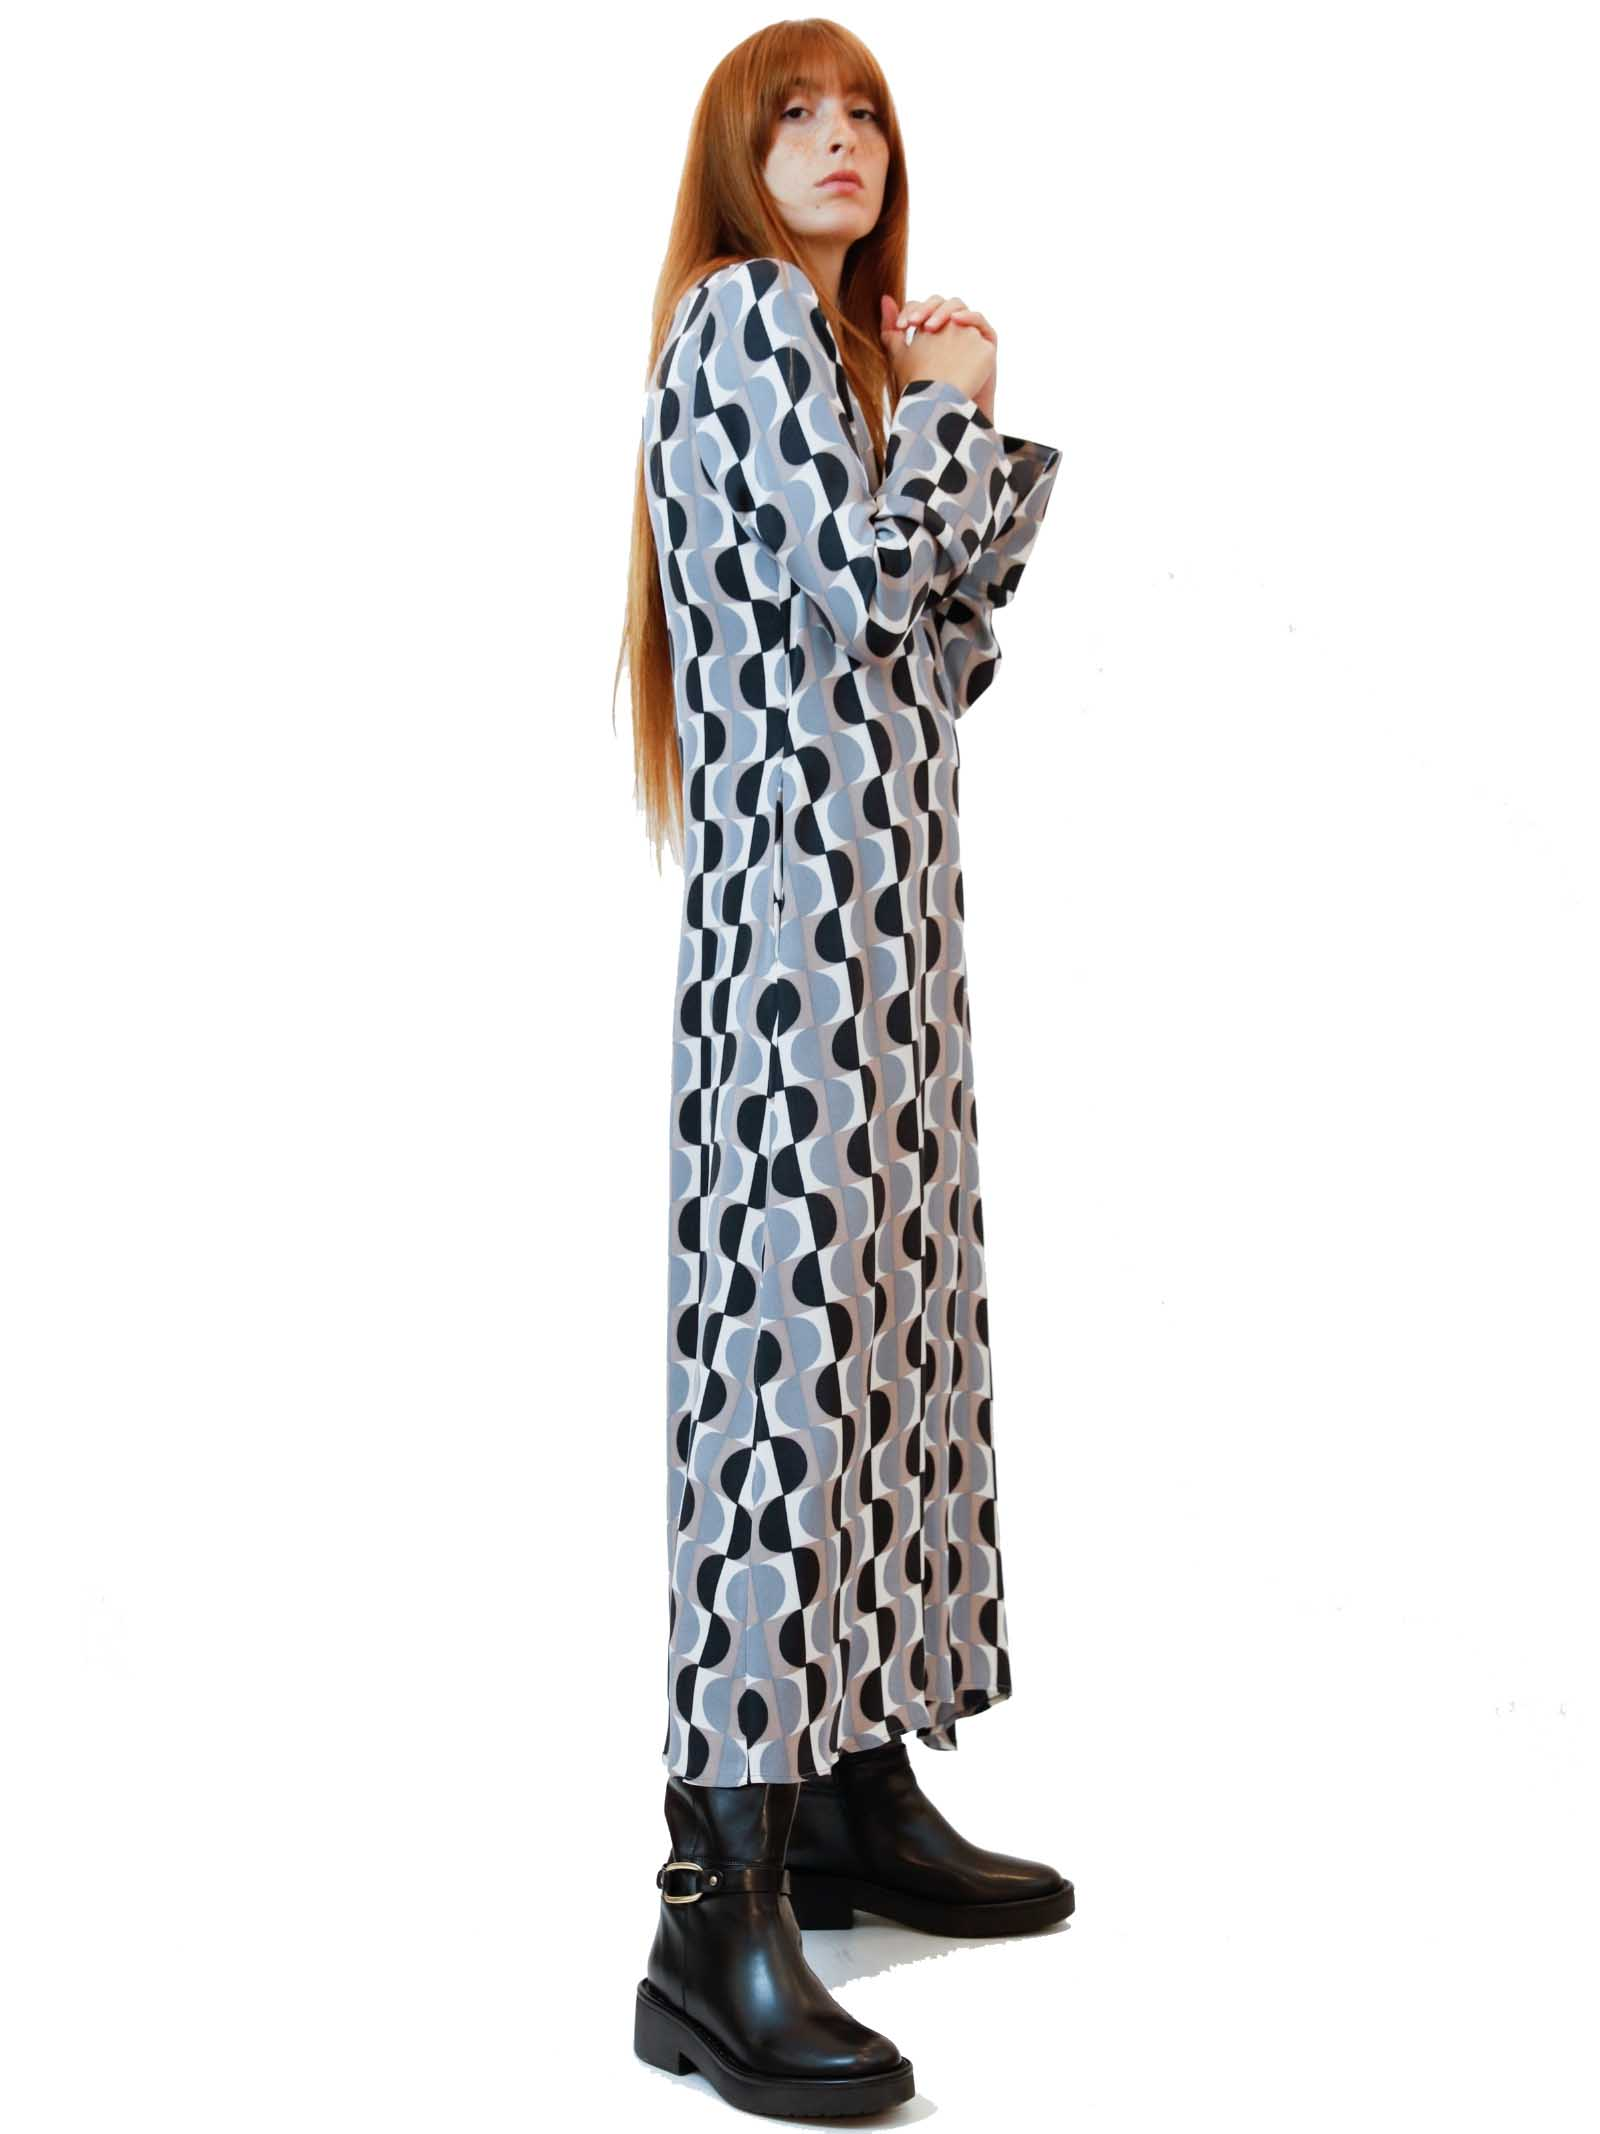 Women's Clothing Roundground Long Dress in Natural and Dark Sablè with Patterned Mother of Pearl Buttons Maliparmi | Dresses | JF646550568B1247